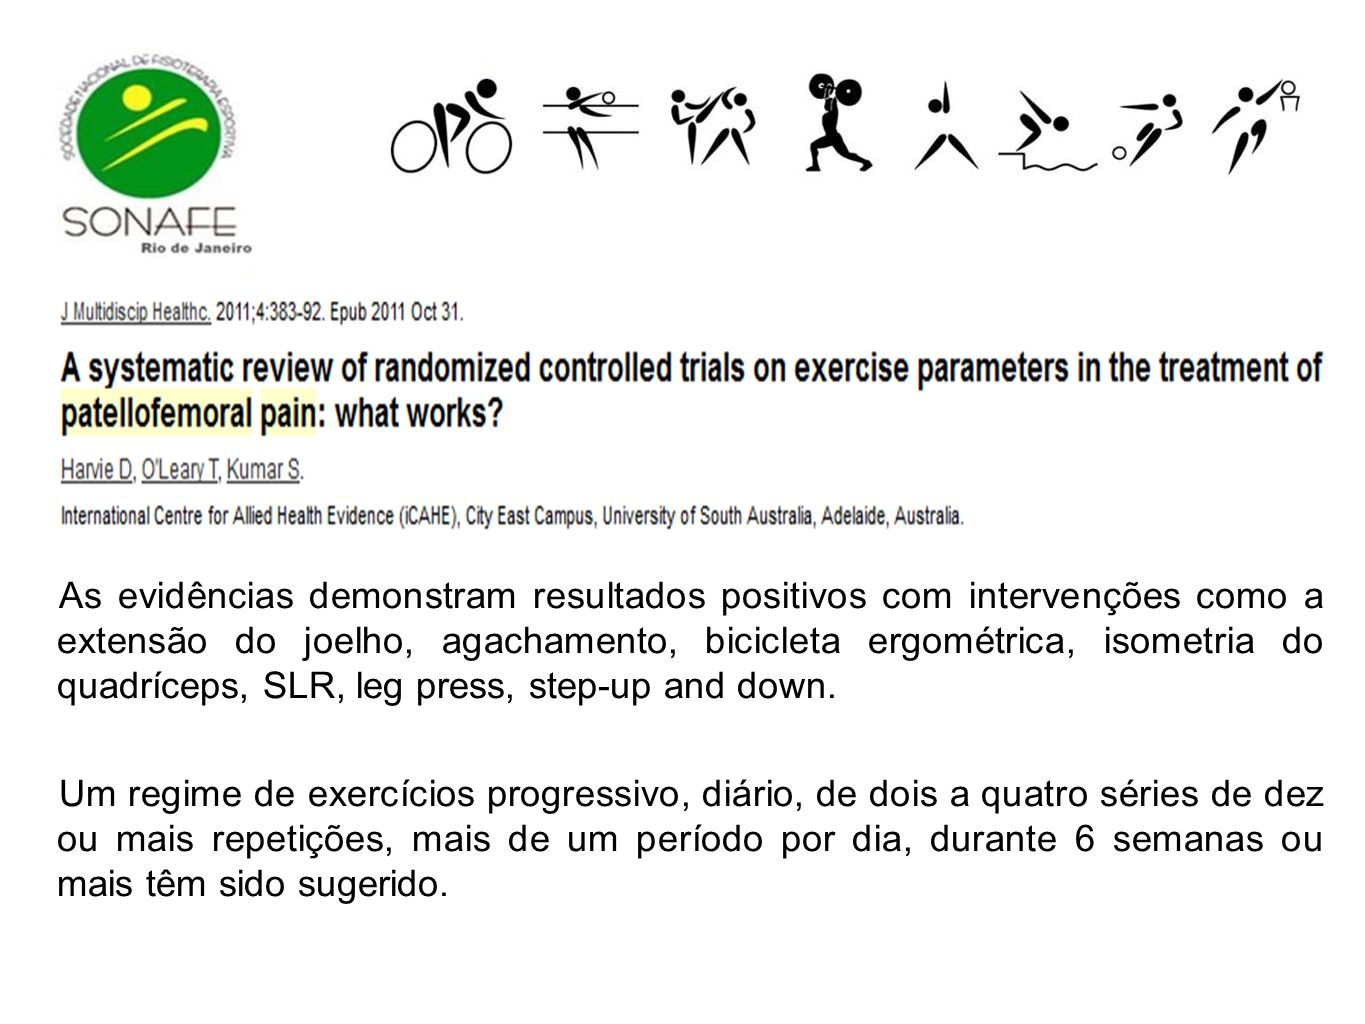 As evidências demonstram resultados positivos com intervenções como a extensão do joelho, agachamento, bicicleta ergométrica, isometria do quadríceps, SLR, leg press, step-up and down.